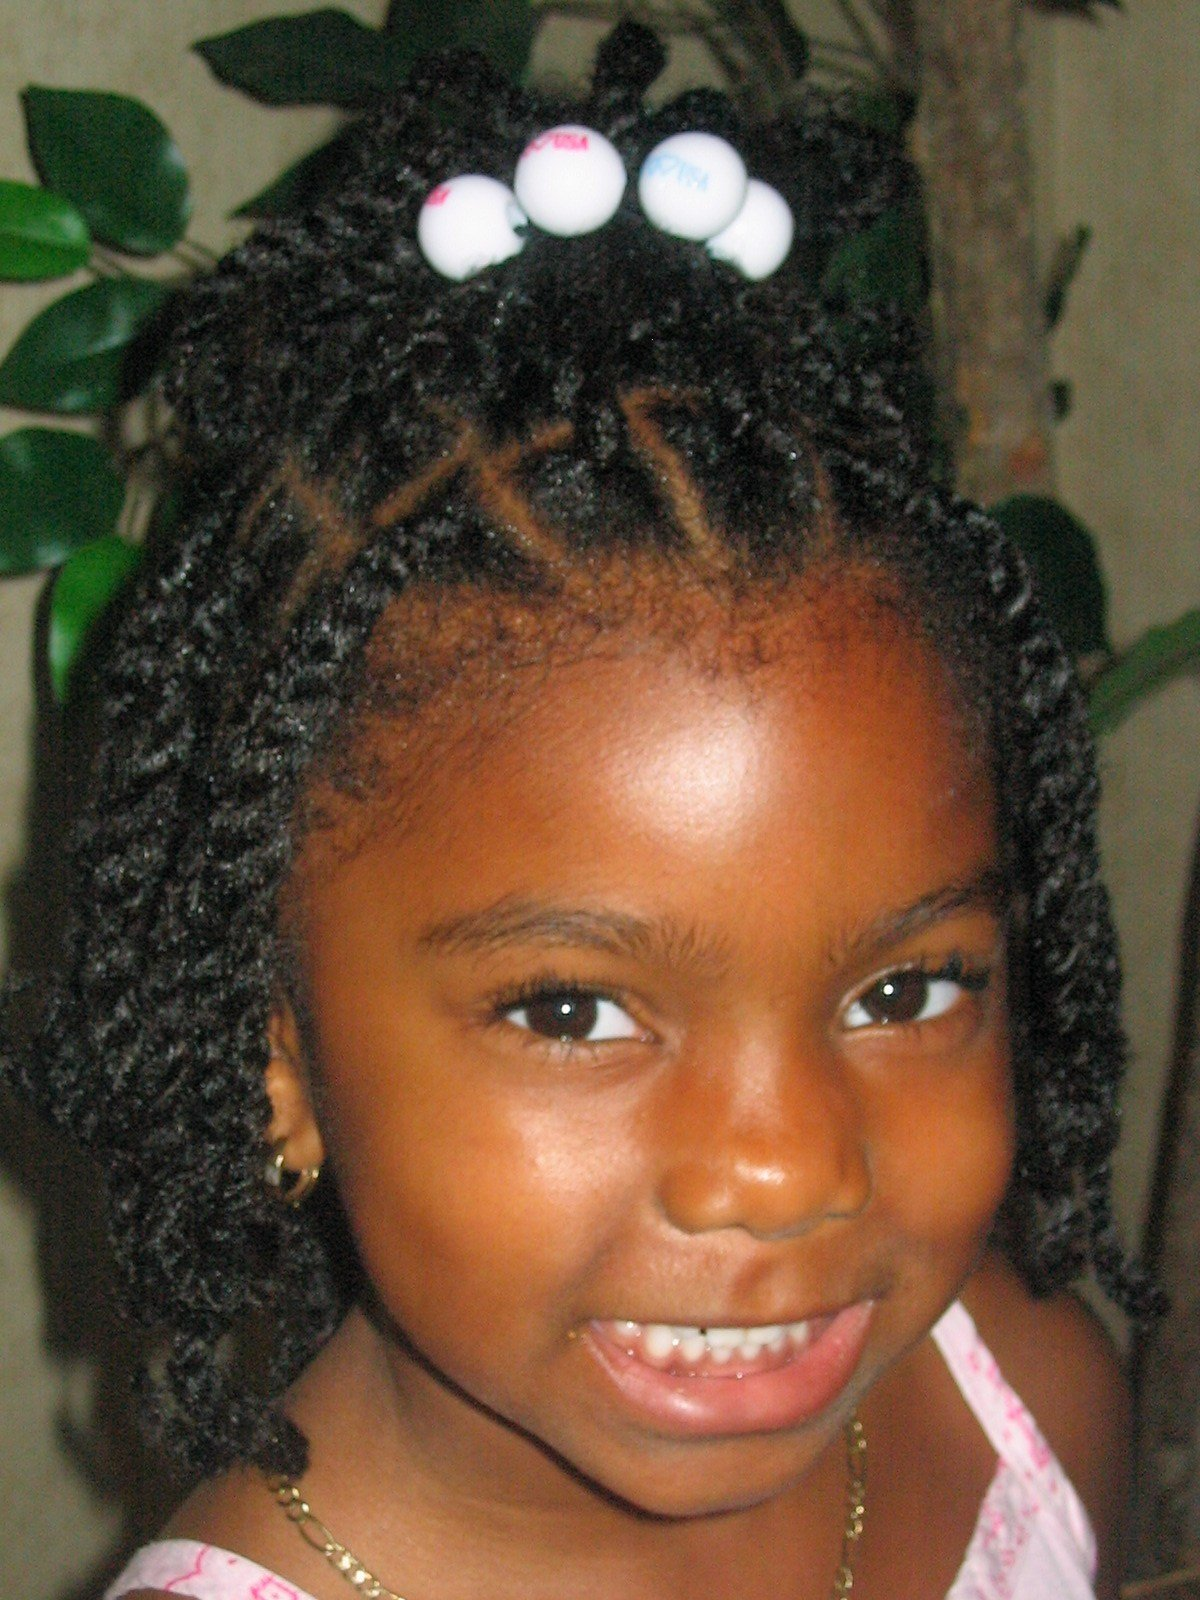 The Best Pictures Of Children Hairstyles Black Hair Media Forum Pictures